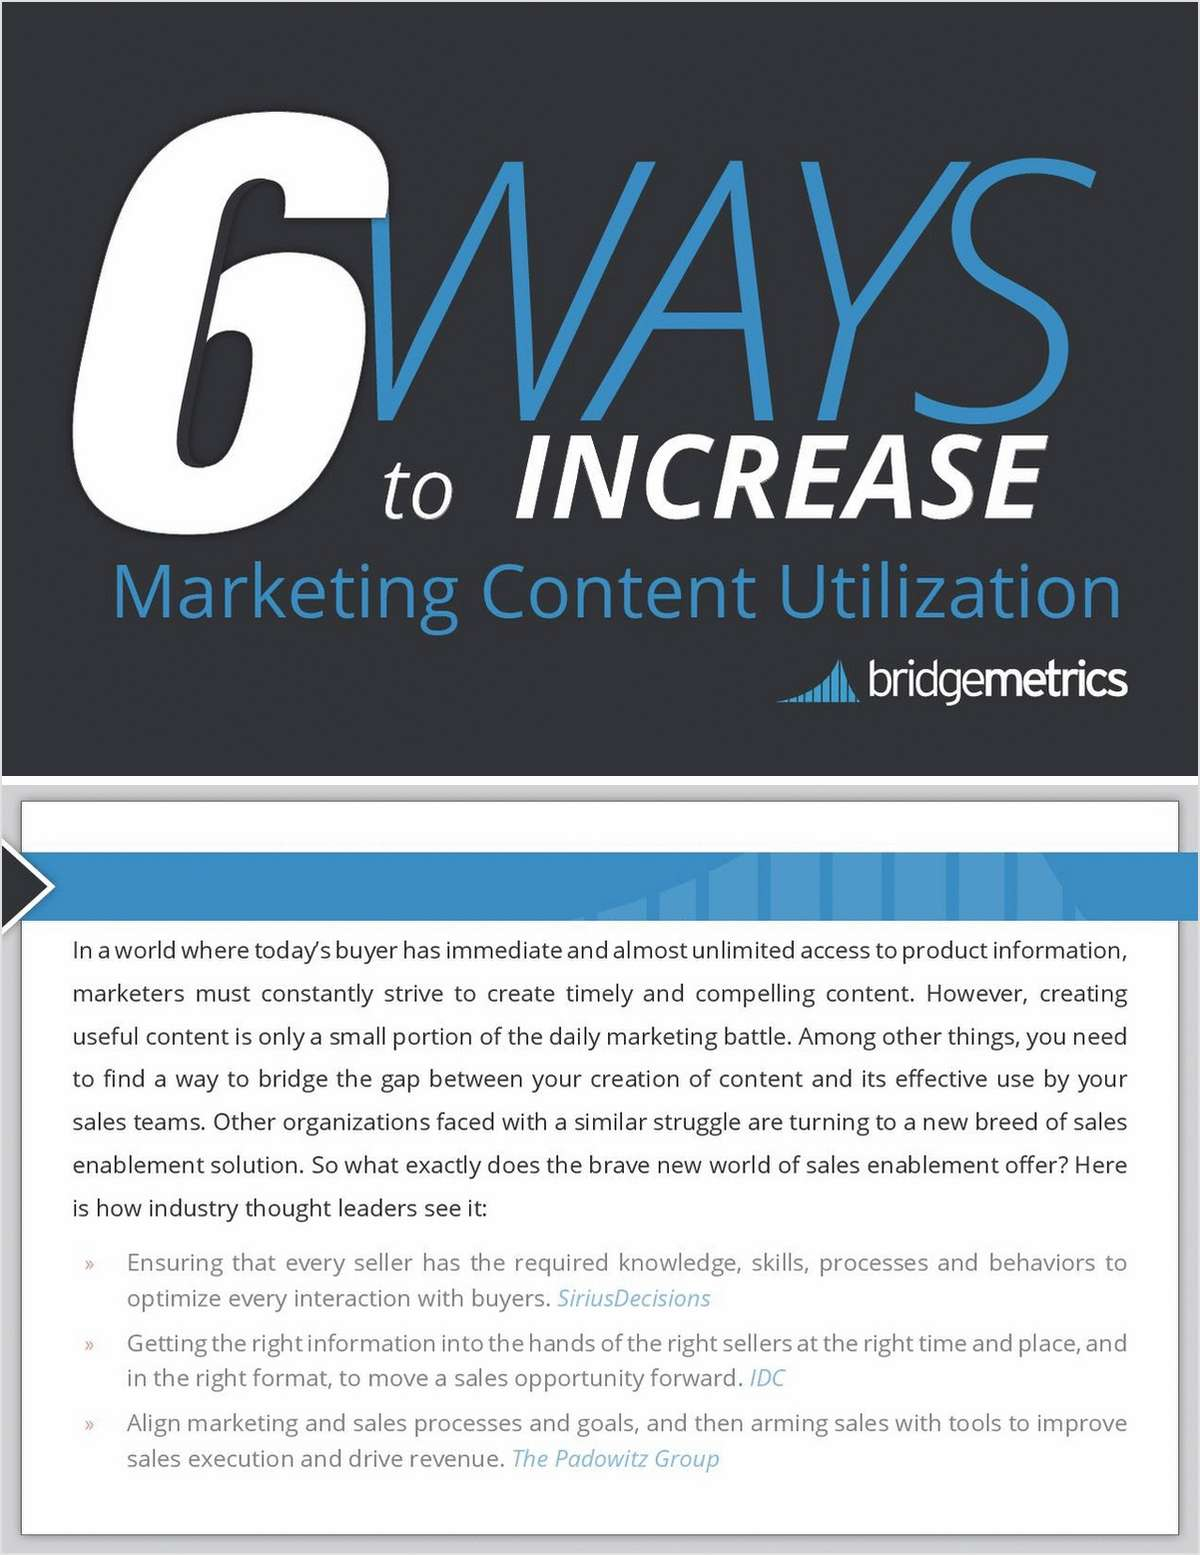 6 Ways to Increase Marketing Content Utilization